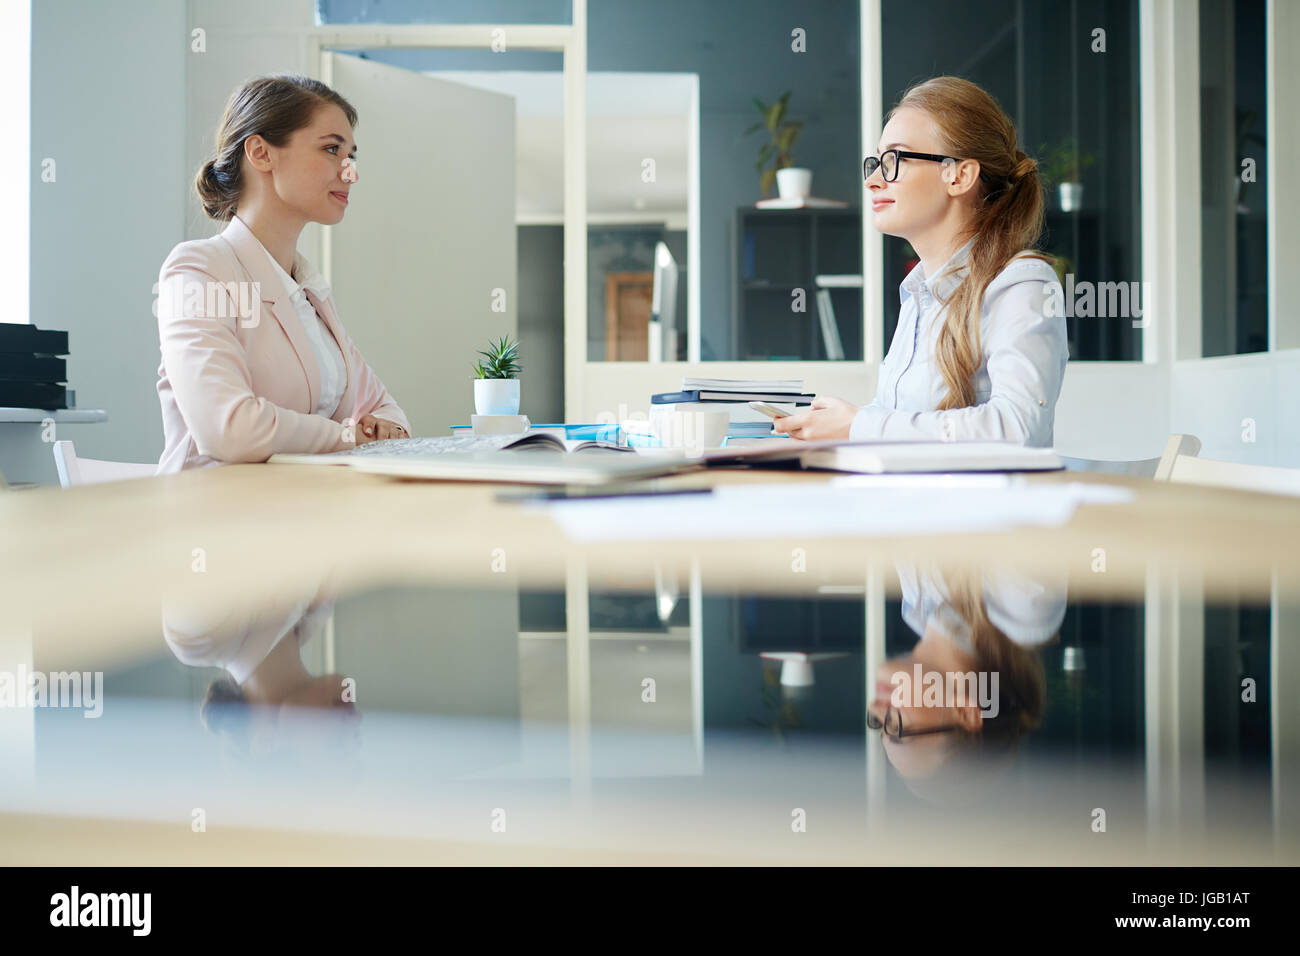 Interview in office - Stock Image